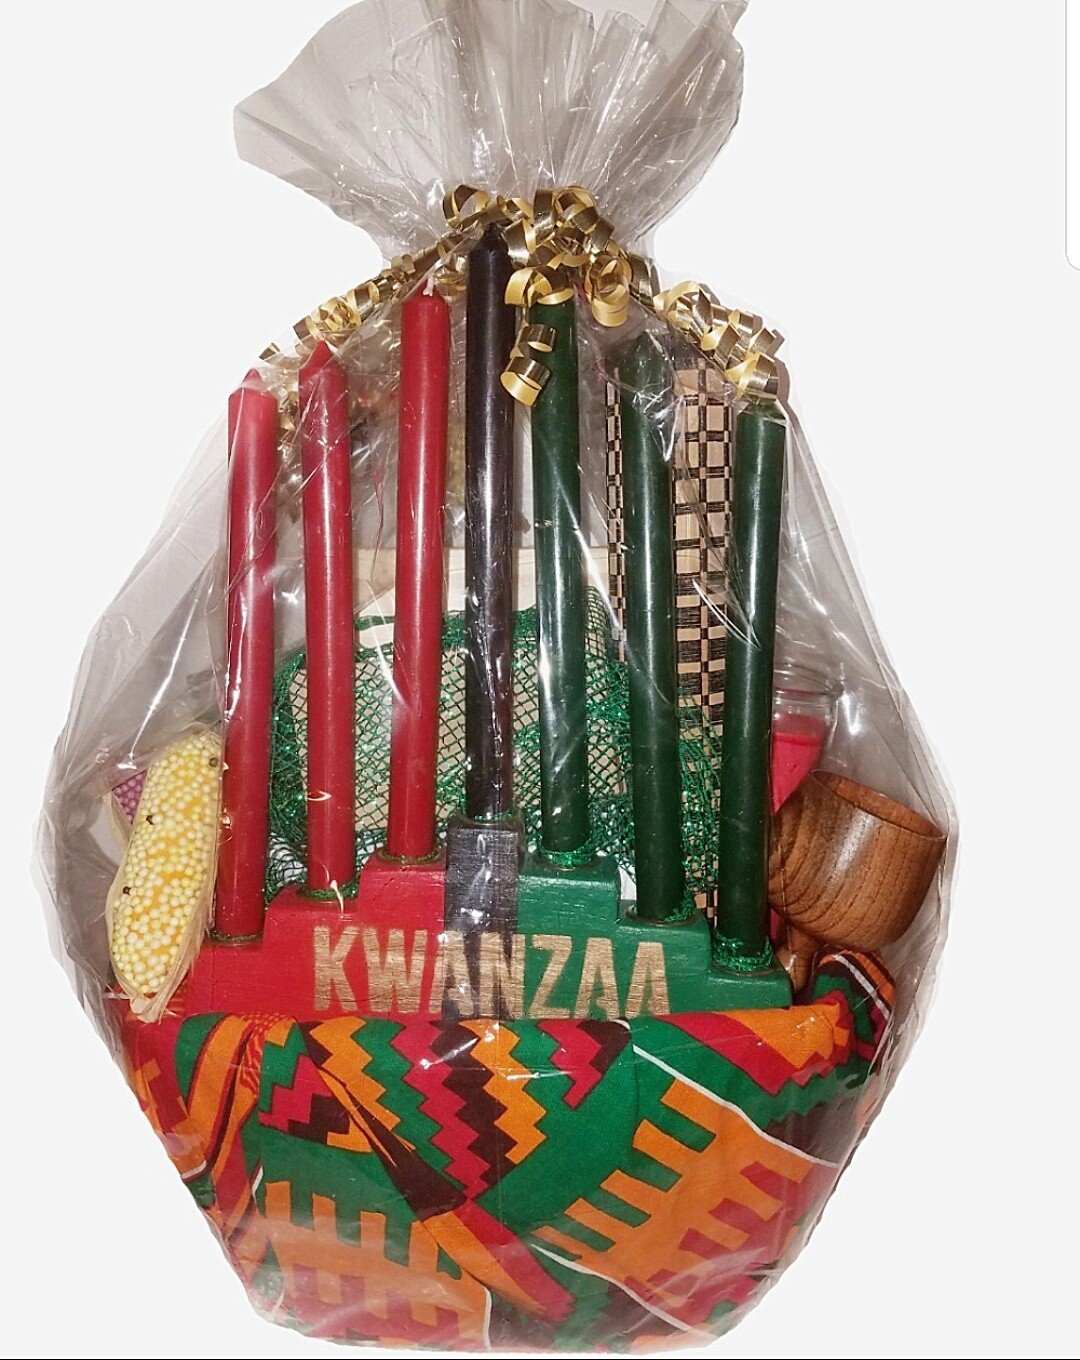 Seven Symbols of Kwanzaa Celebration Gift Basket Set